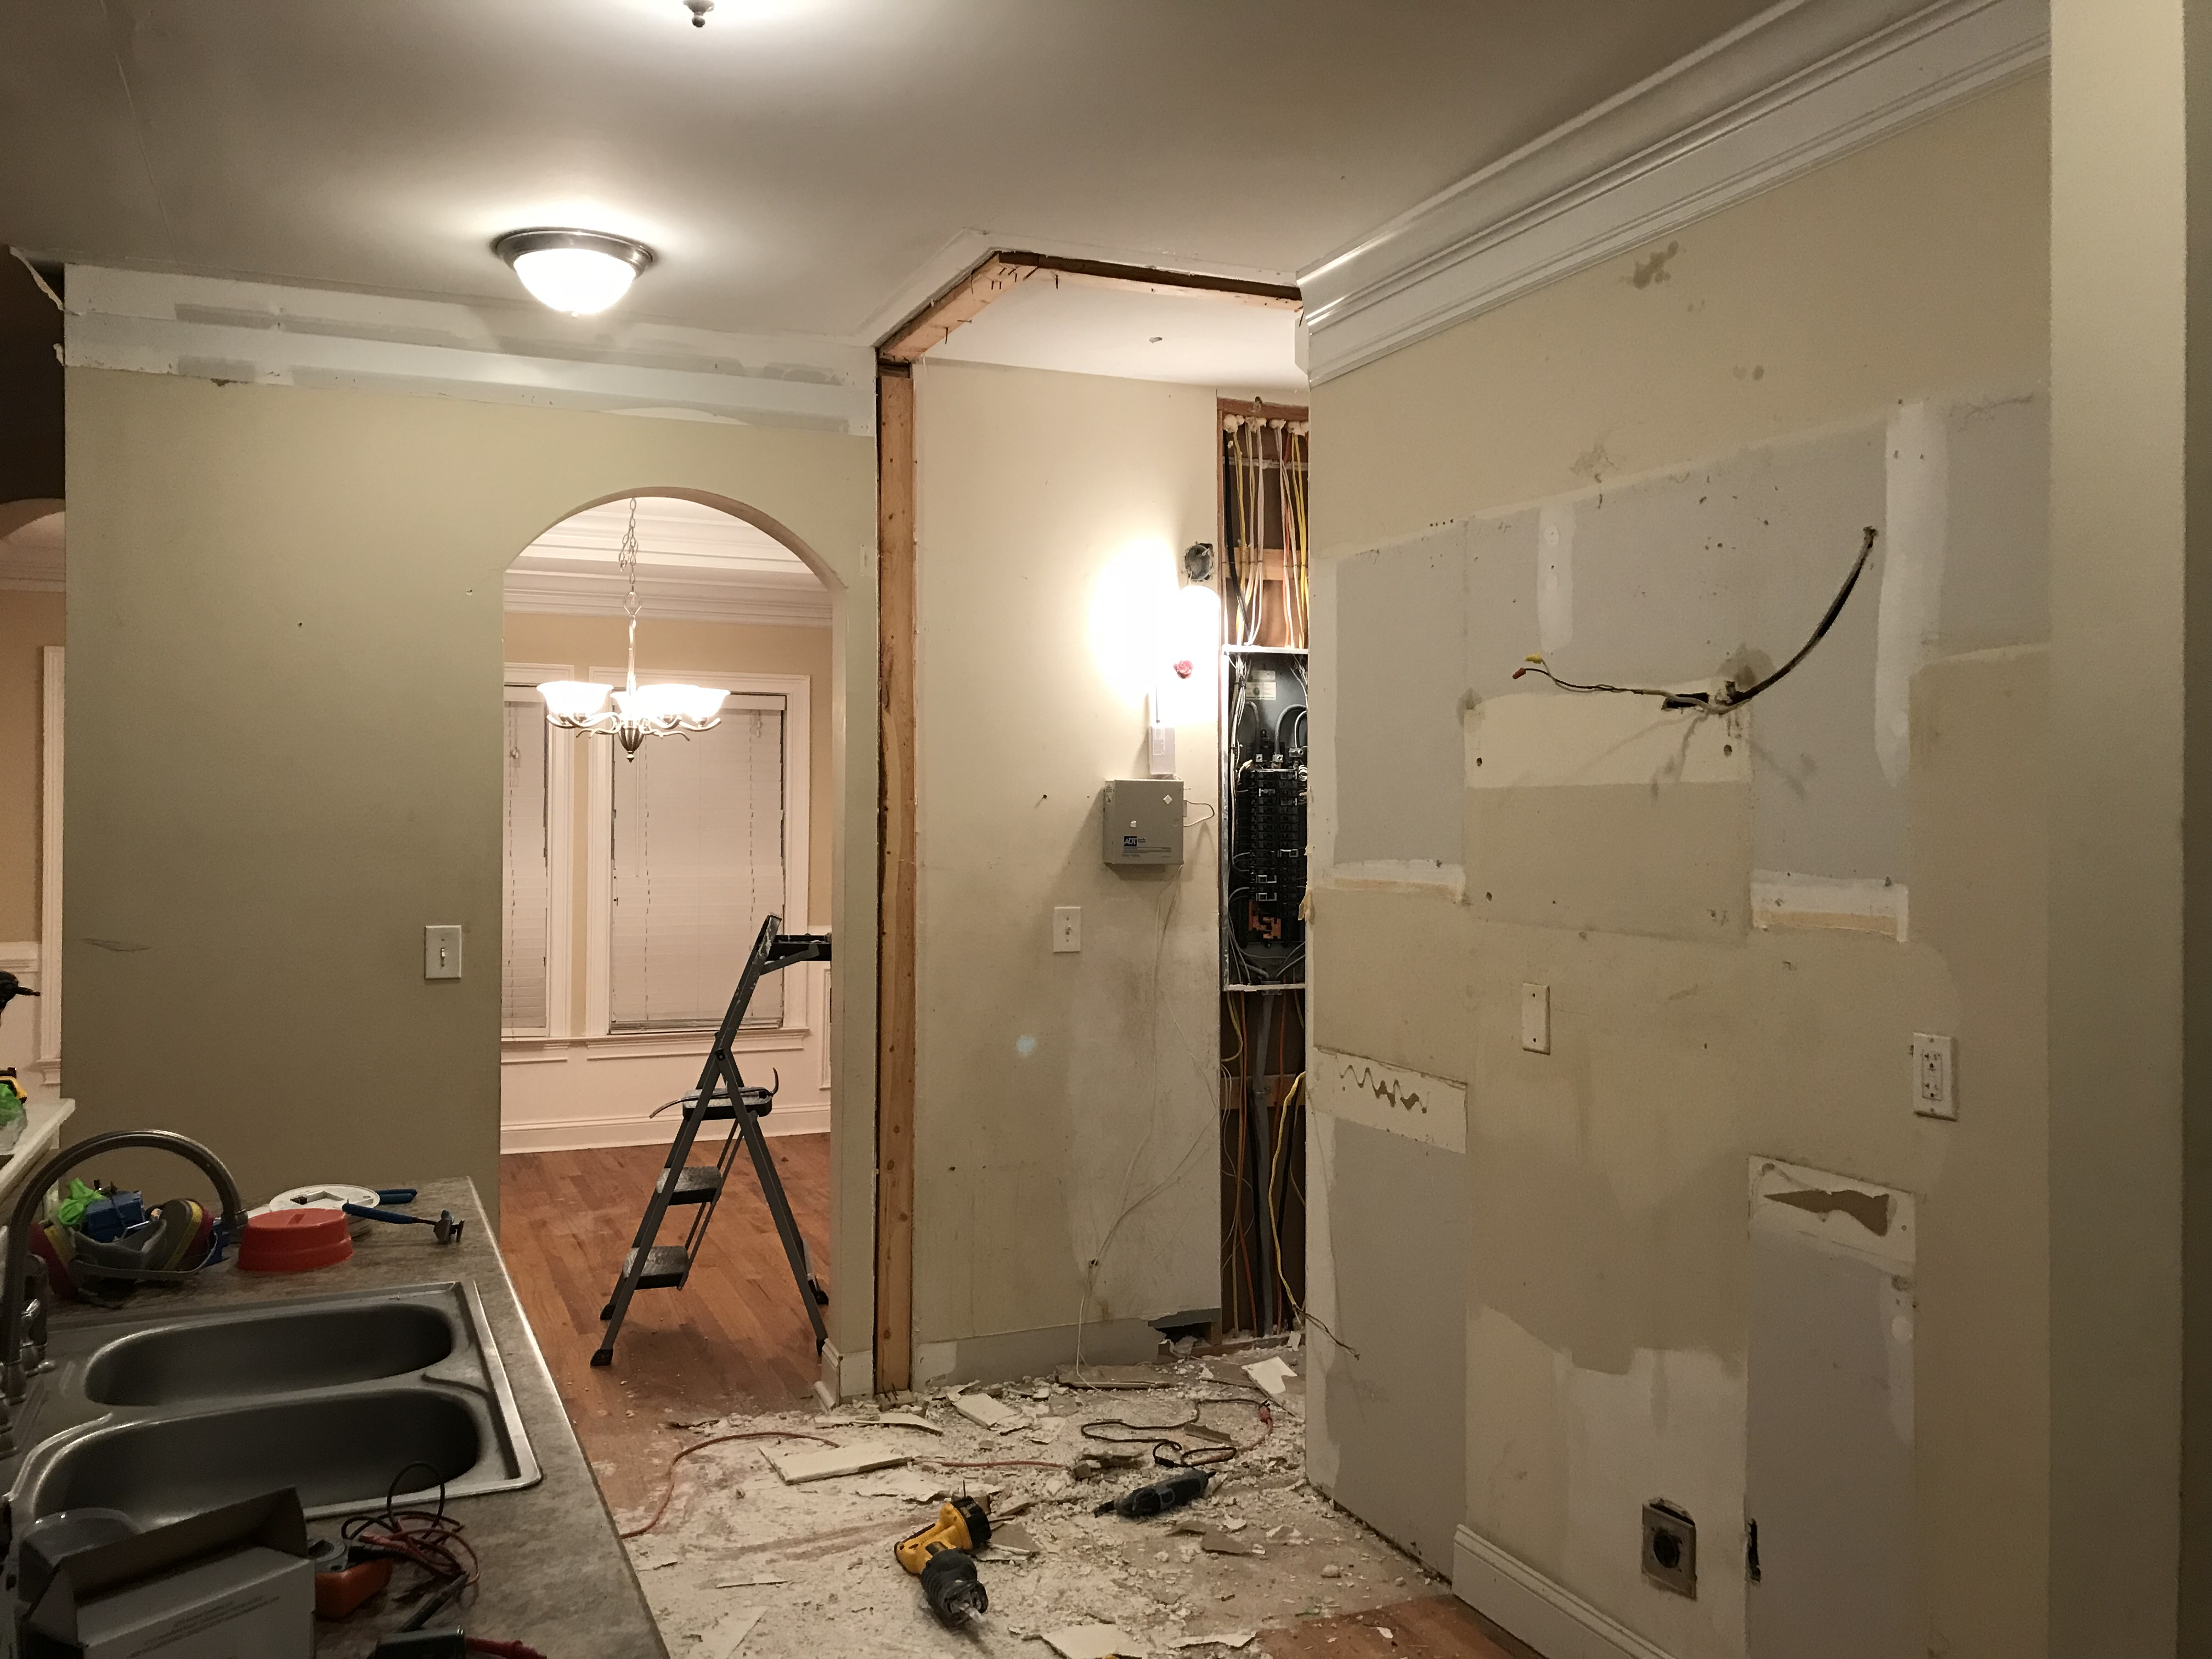 In Our Last Post, We Got About Halfway Through Our Kitchen Demolition In  House 1 By Removing The Entryway To The Utility Closet Along With All The  Cabinets ...